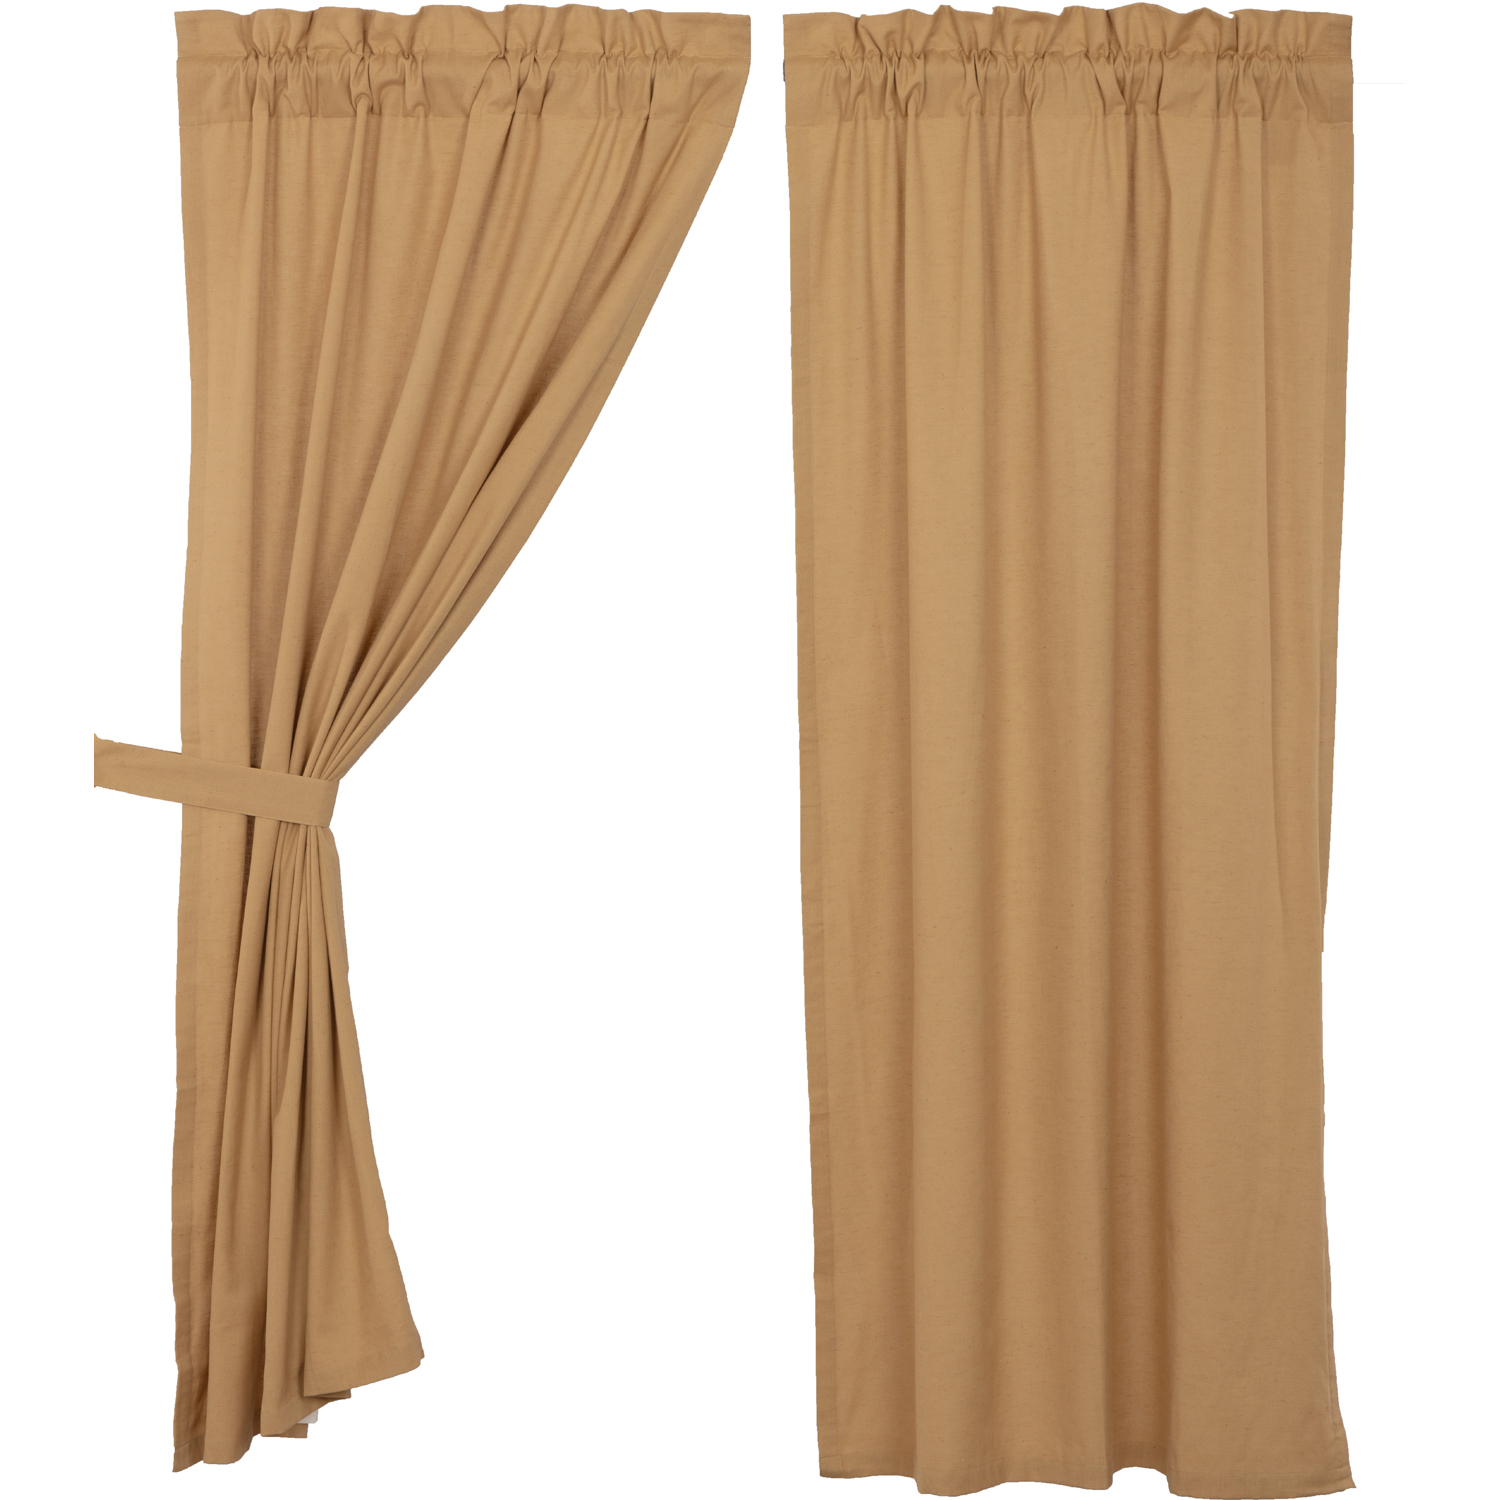 Simple Life Flax Khaki Short Panel Set of 2 63x36